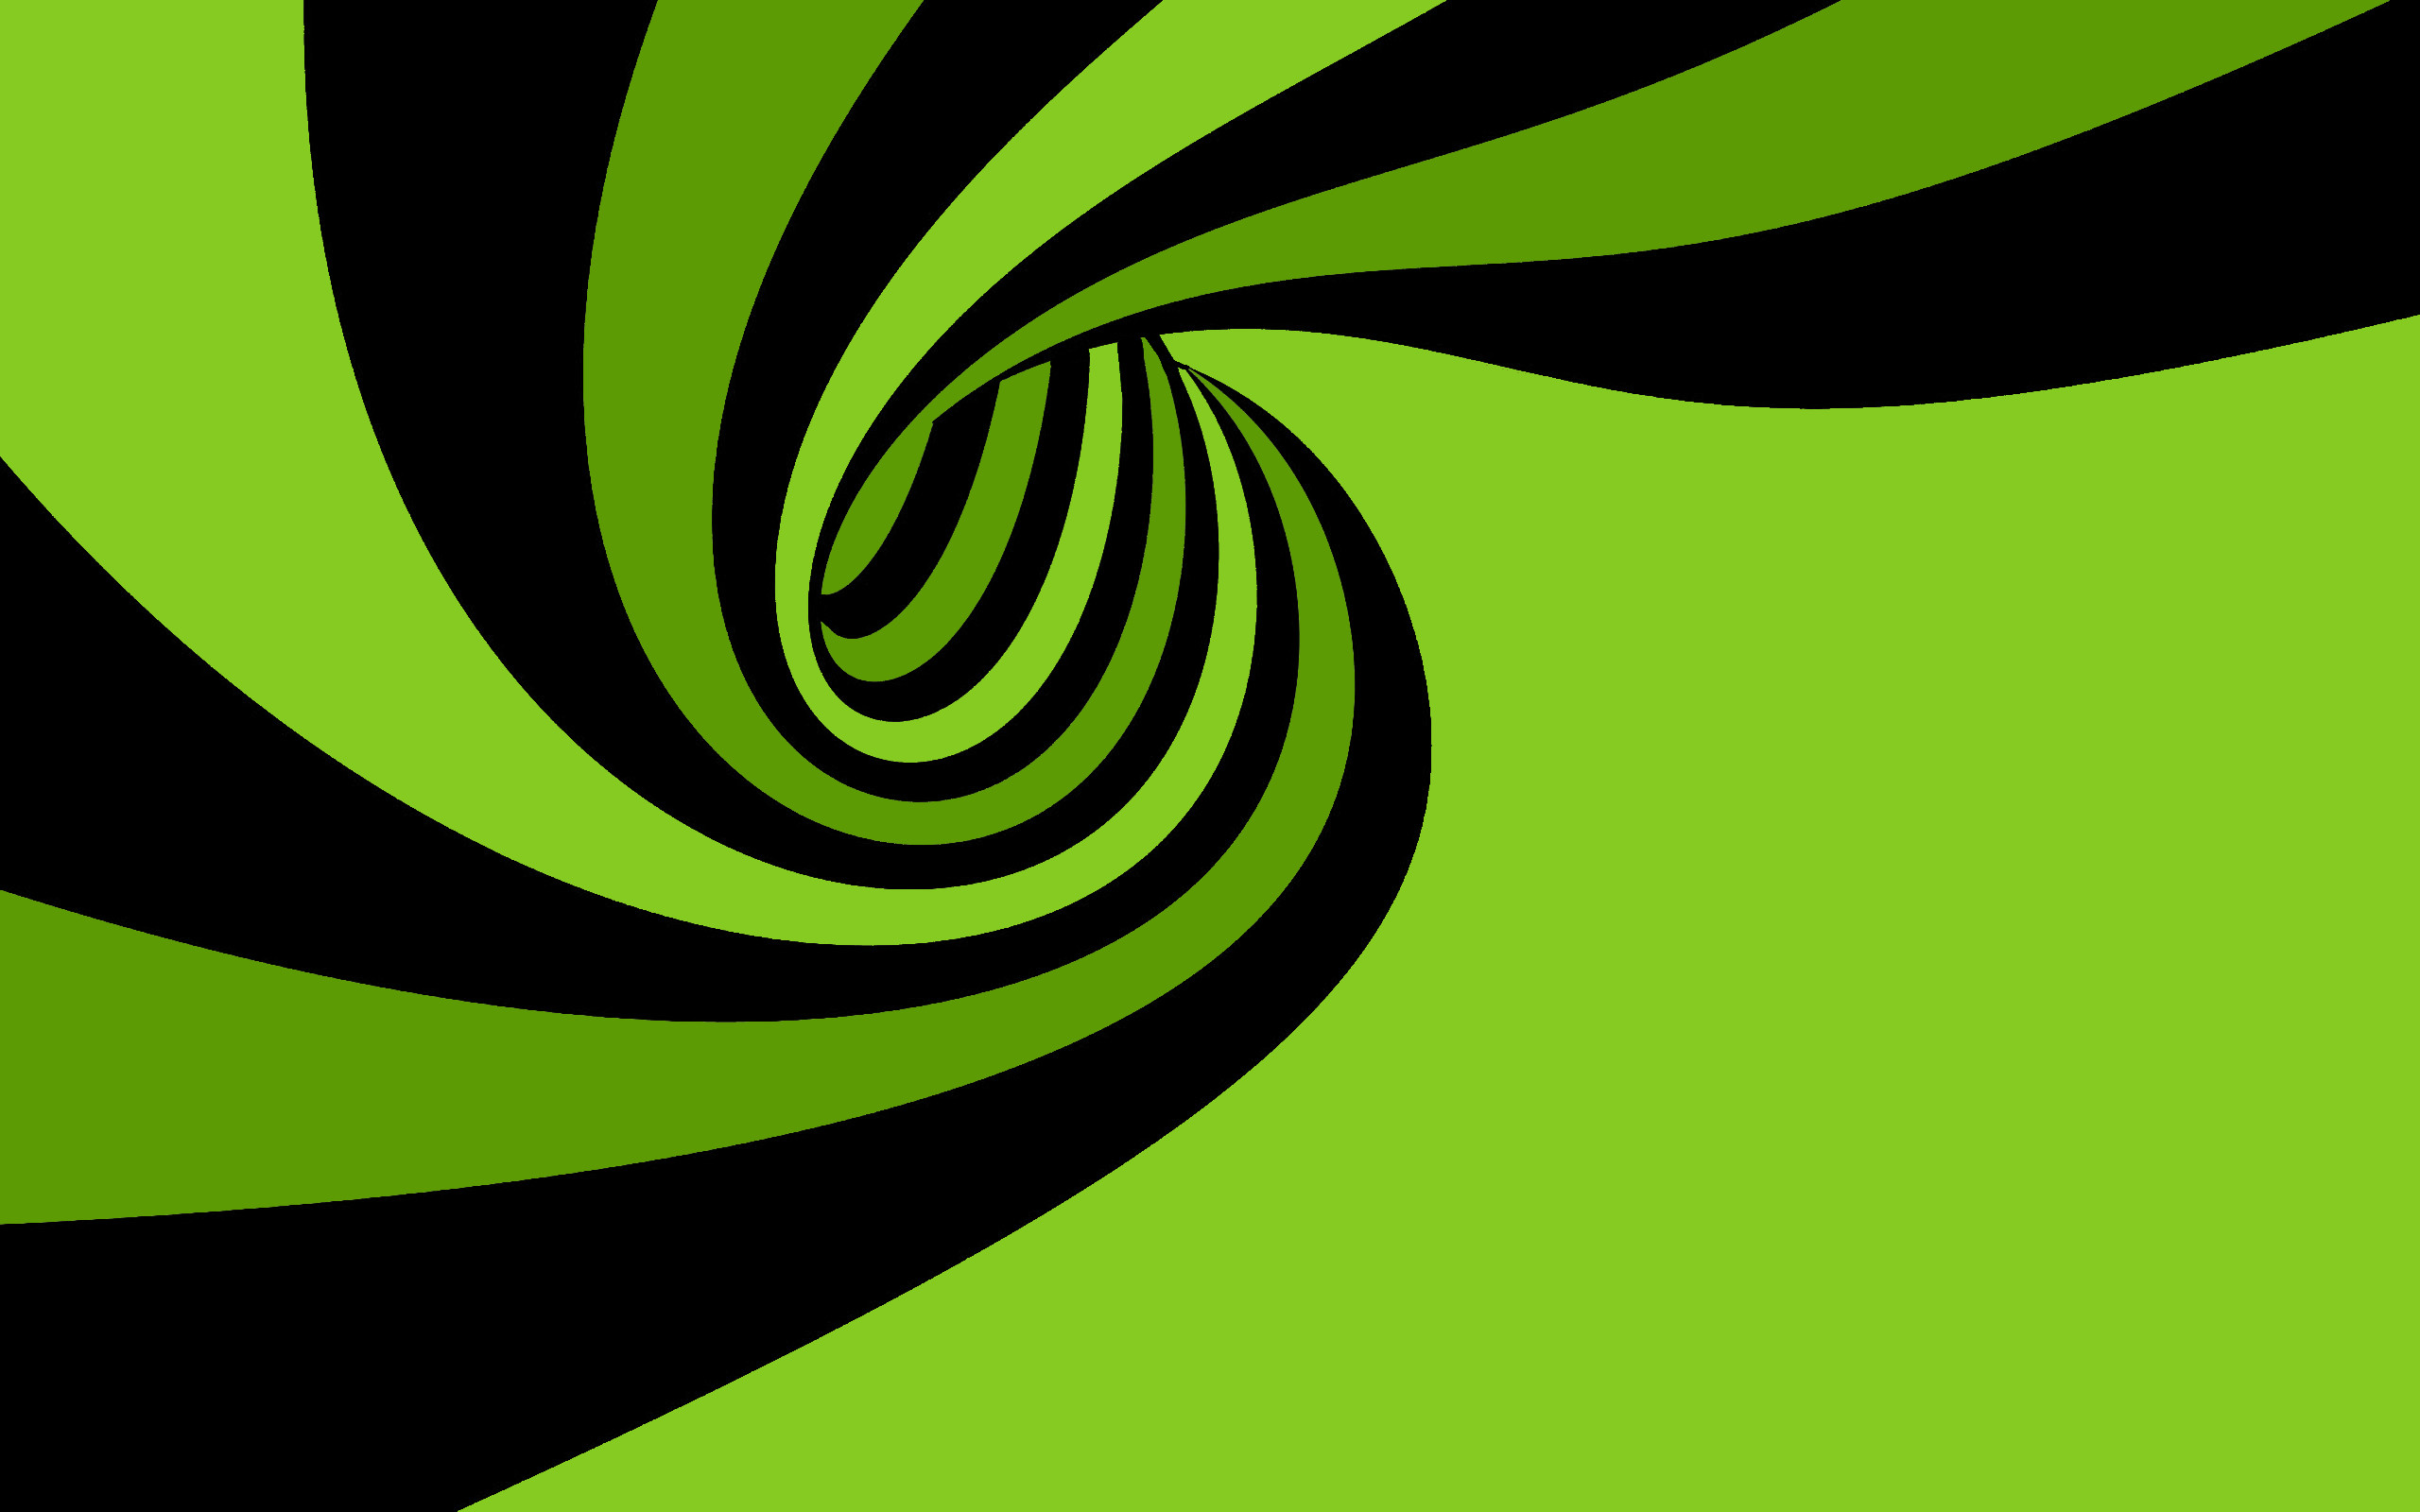 Green And Black Wallpapers 17 Widescreen Wallpaper. Green And Black  Wallpapers 17 Widescreen Wallpaper